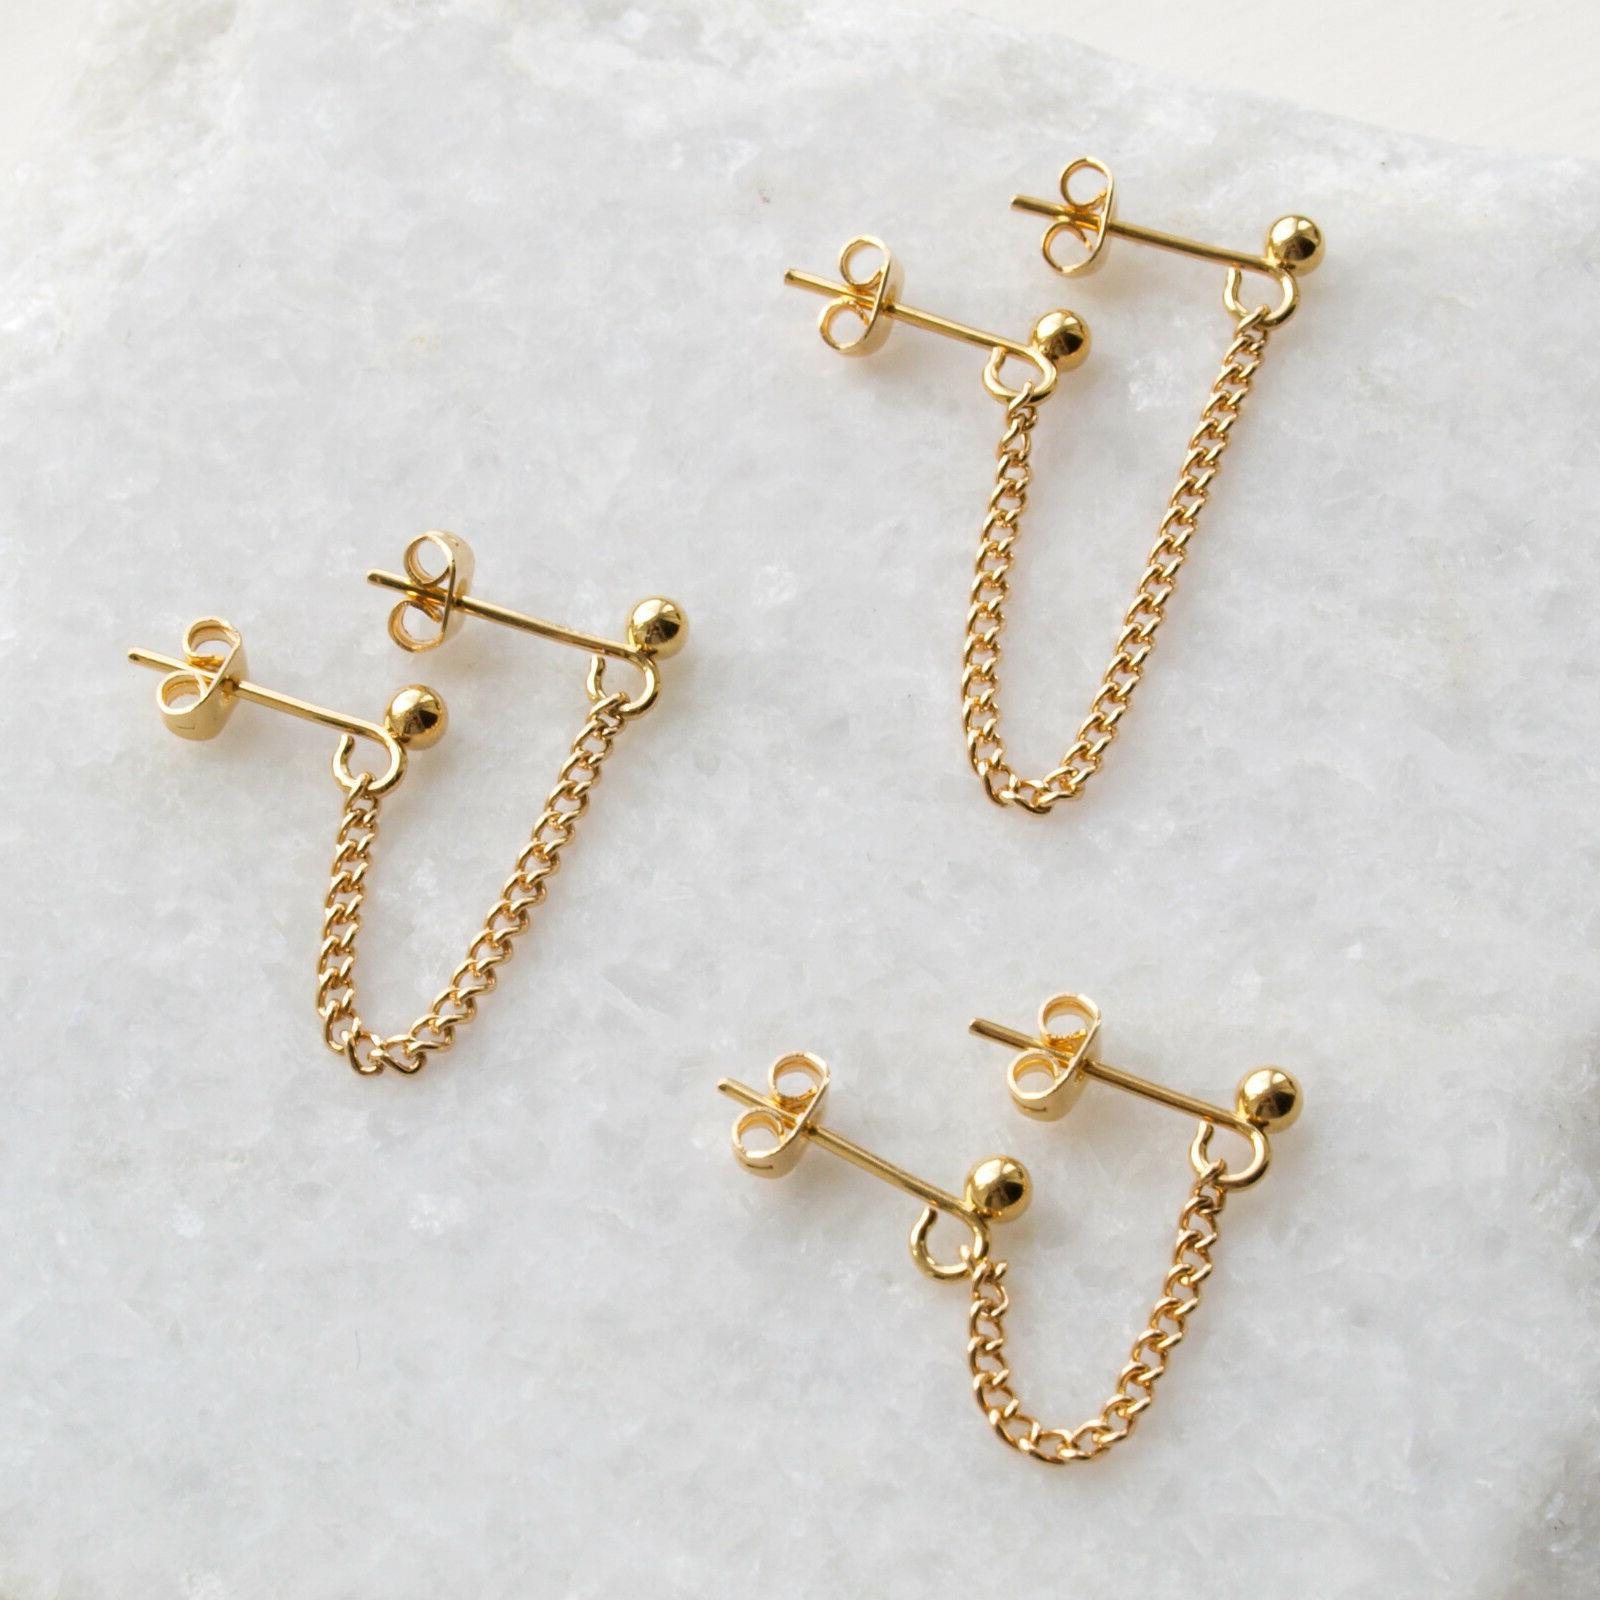 Gold Double Piercing Chain Stud Earring - Multiple Lobe Pier